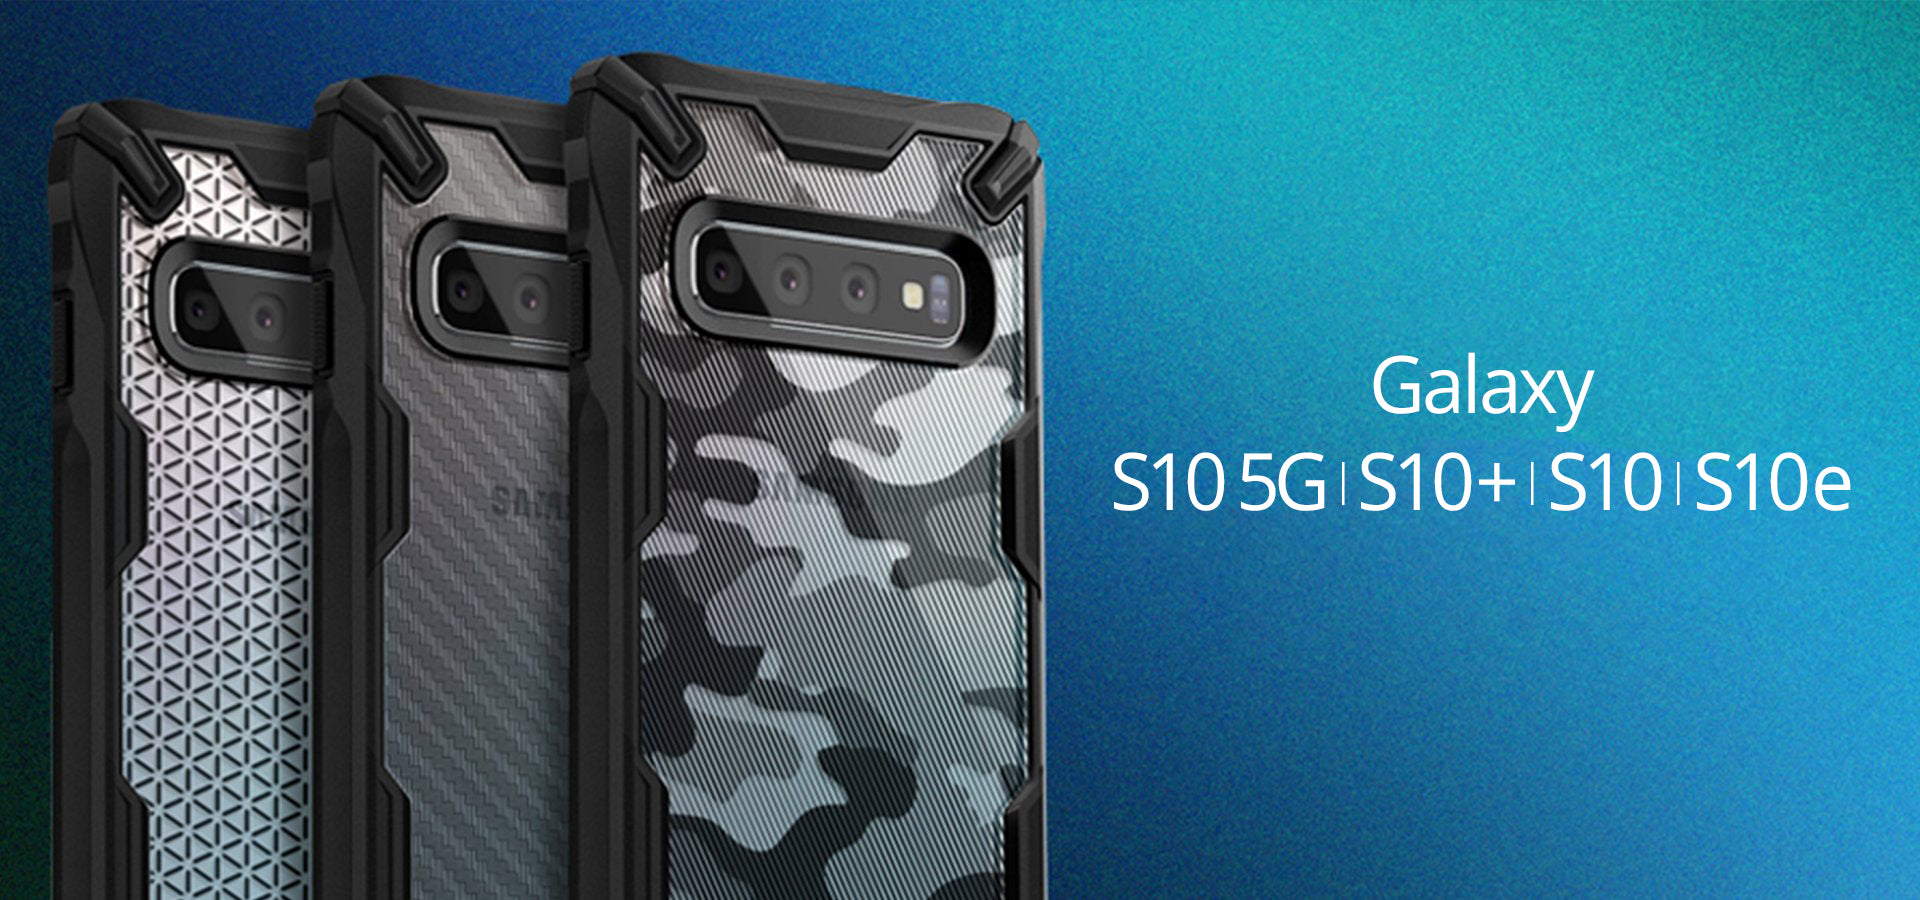 Ringke galaxy s10 5G, S10+, S10, S10e Case Collection